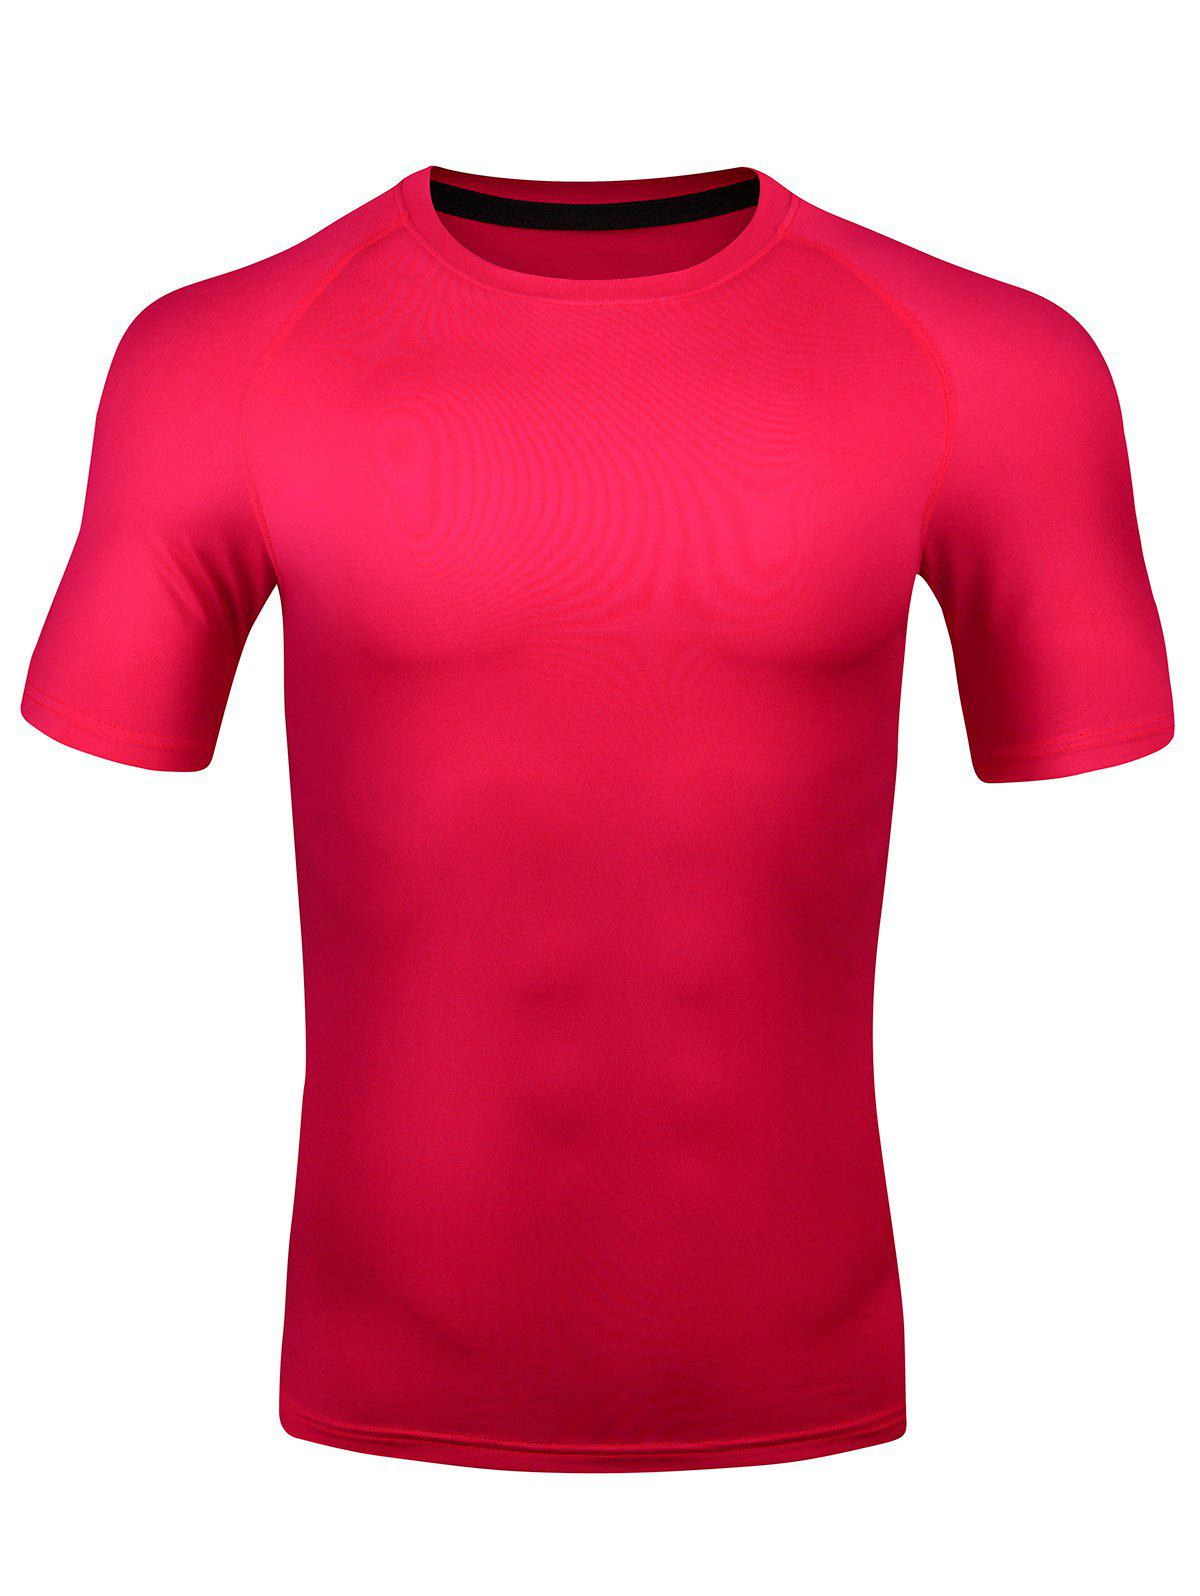 Fancy Short Sleeve Quick Dry Stretchy Fitness T-shirt